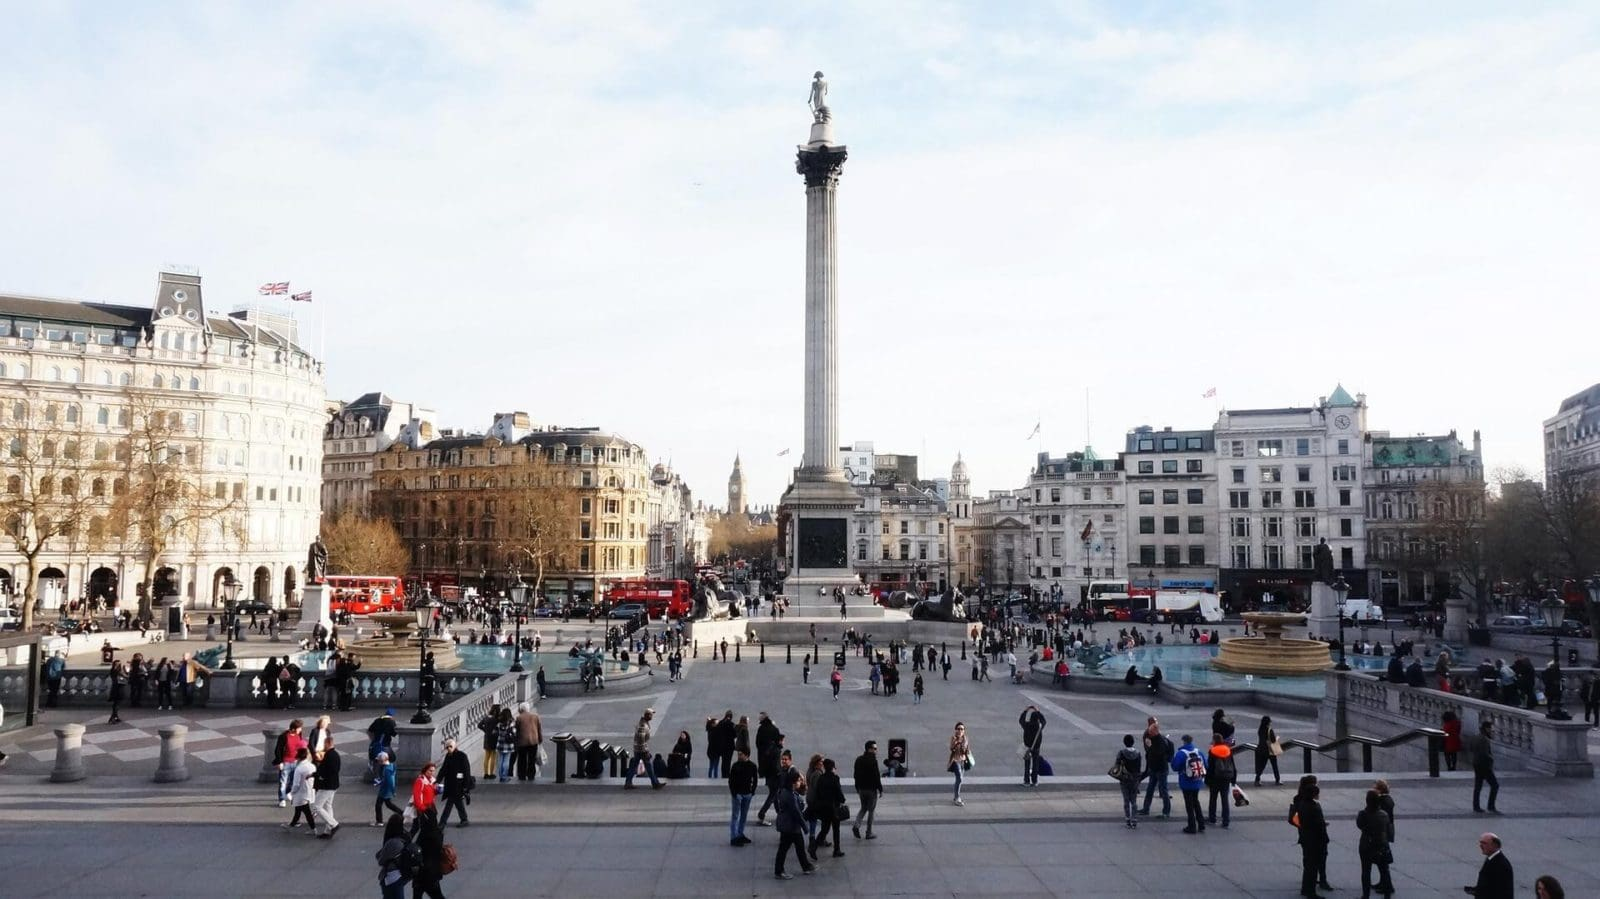 Trafalgar Square in London United Kingdom